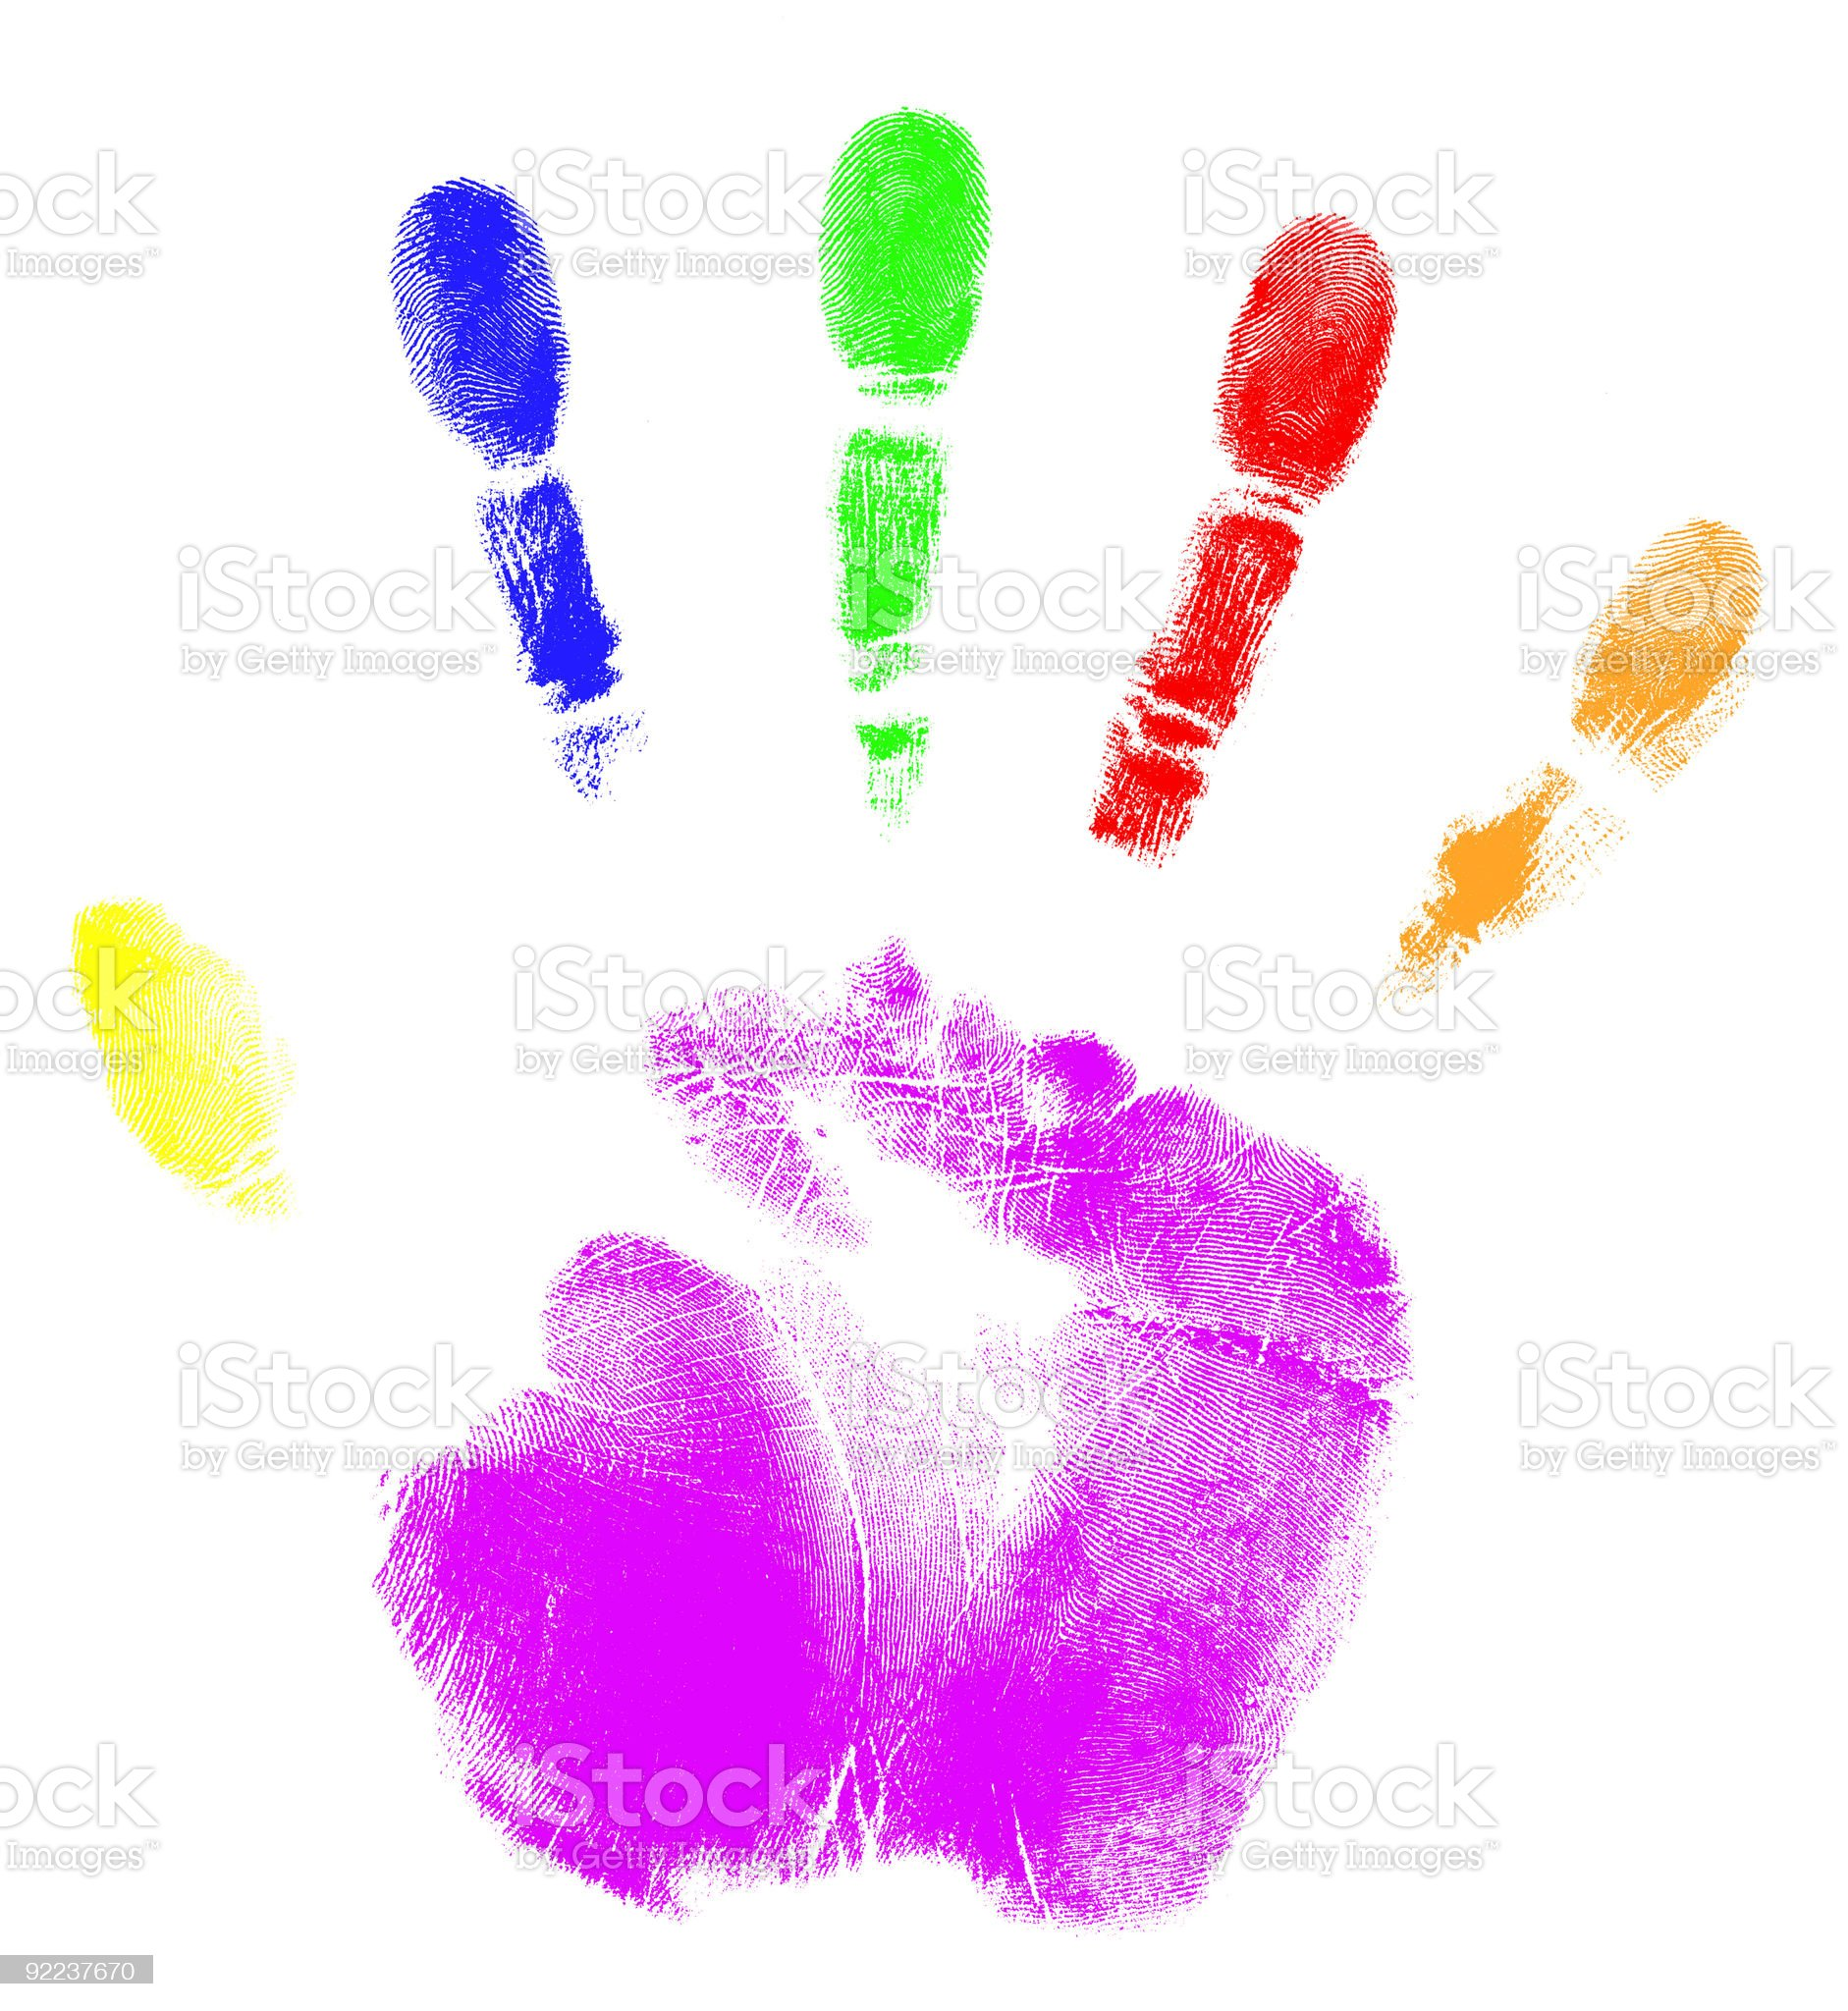 A hand print with different colors for each finger and palm royalty-free stock photo